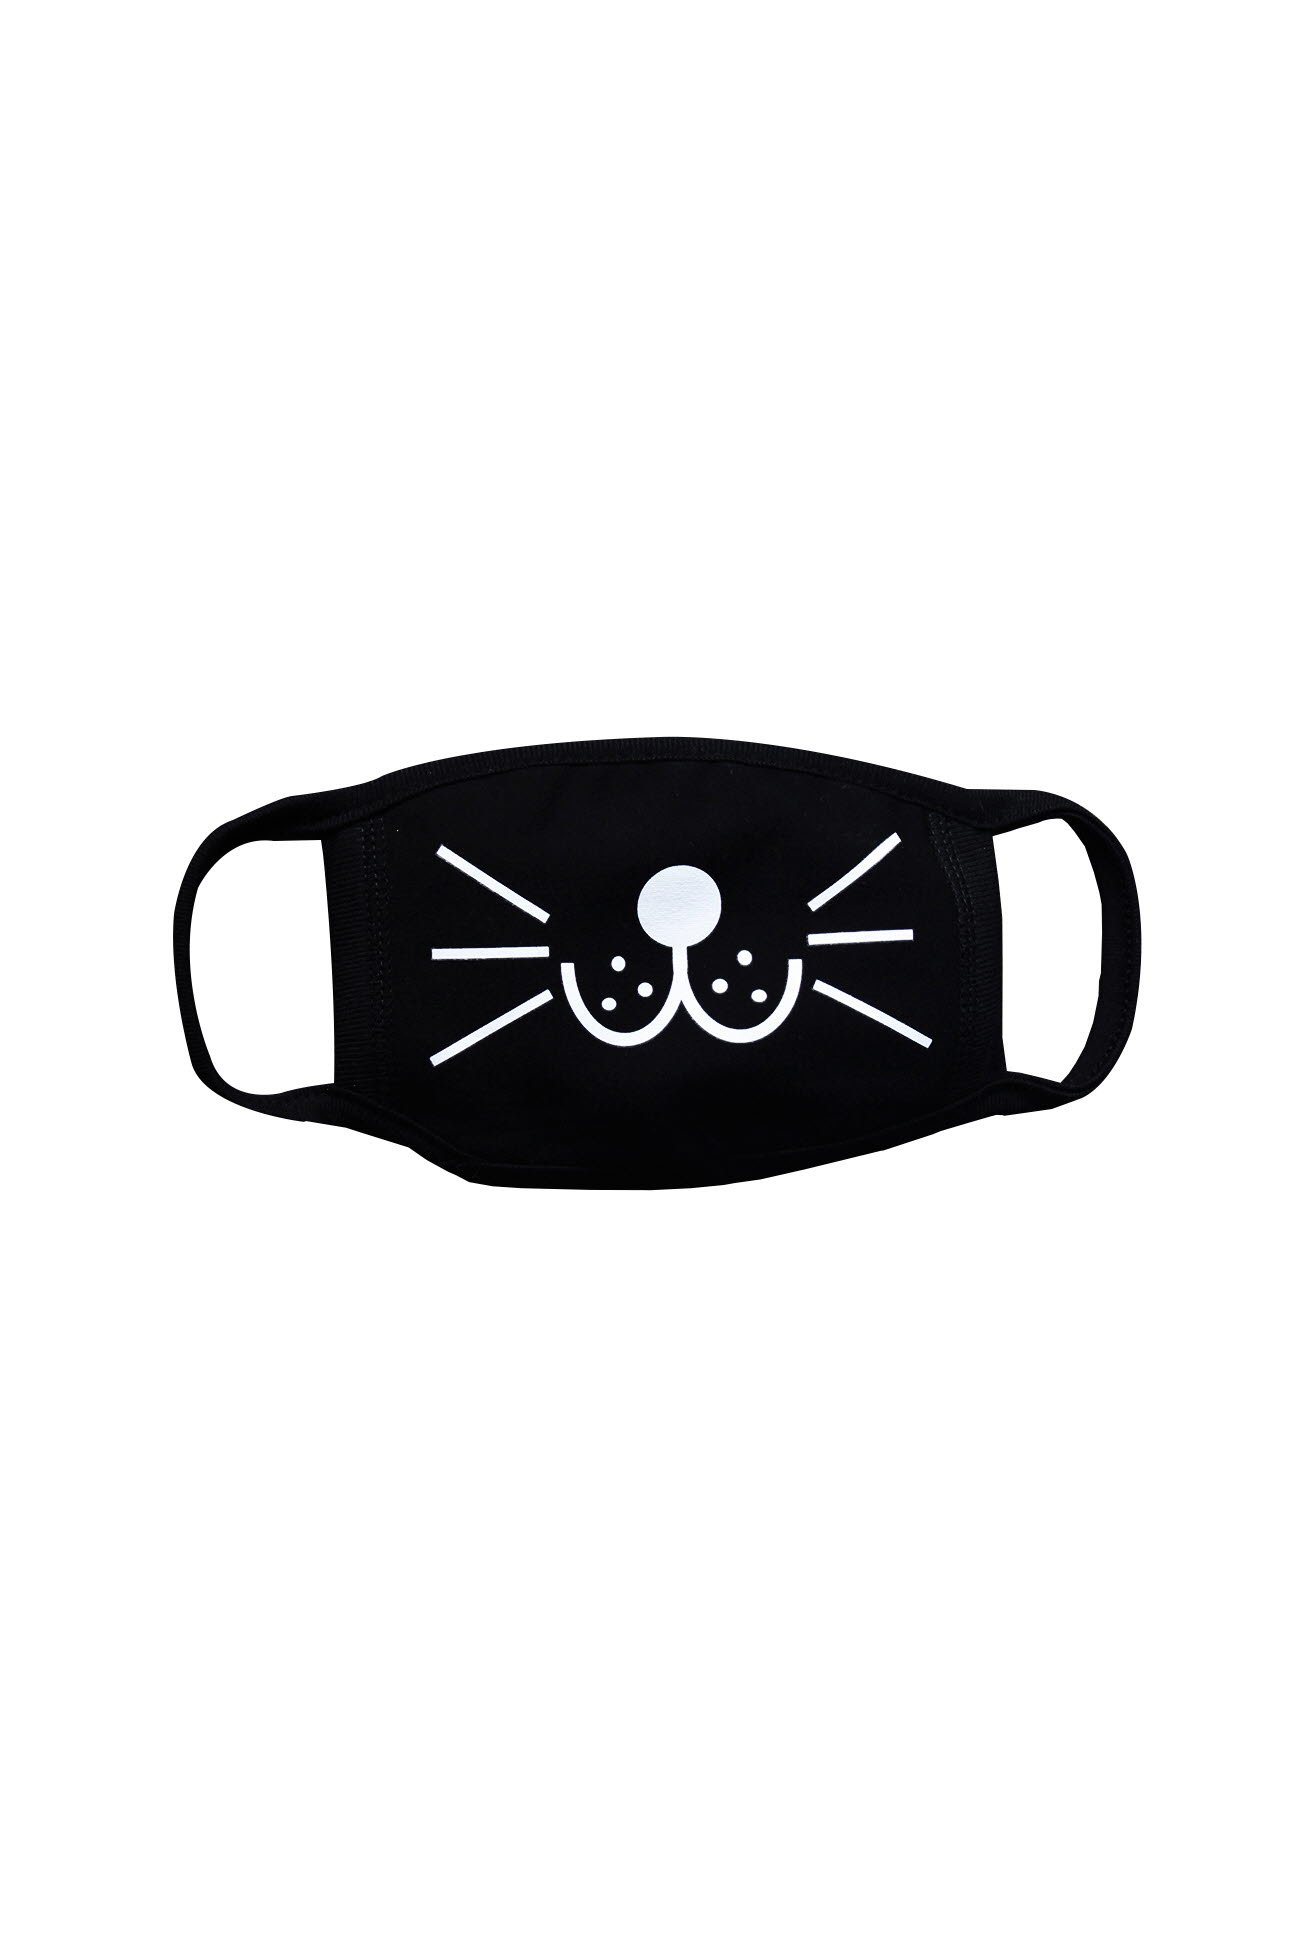 ByTheR Cotton Chic Black Skull Cute Smile Design Printed Face Cover Mouth Mask Cat